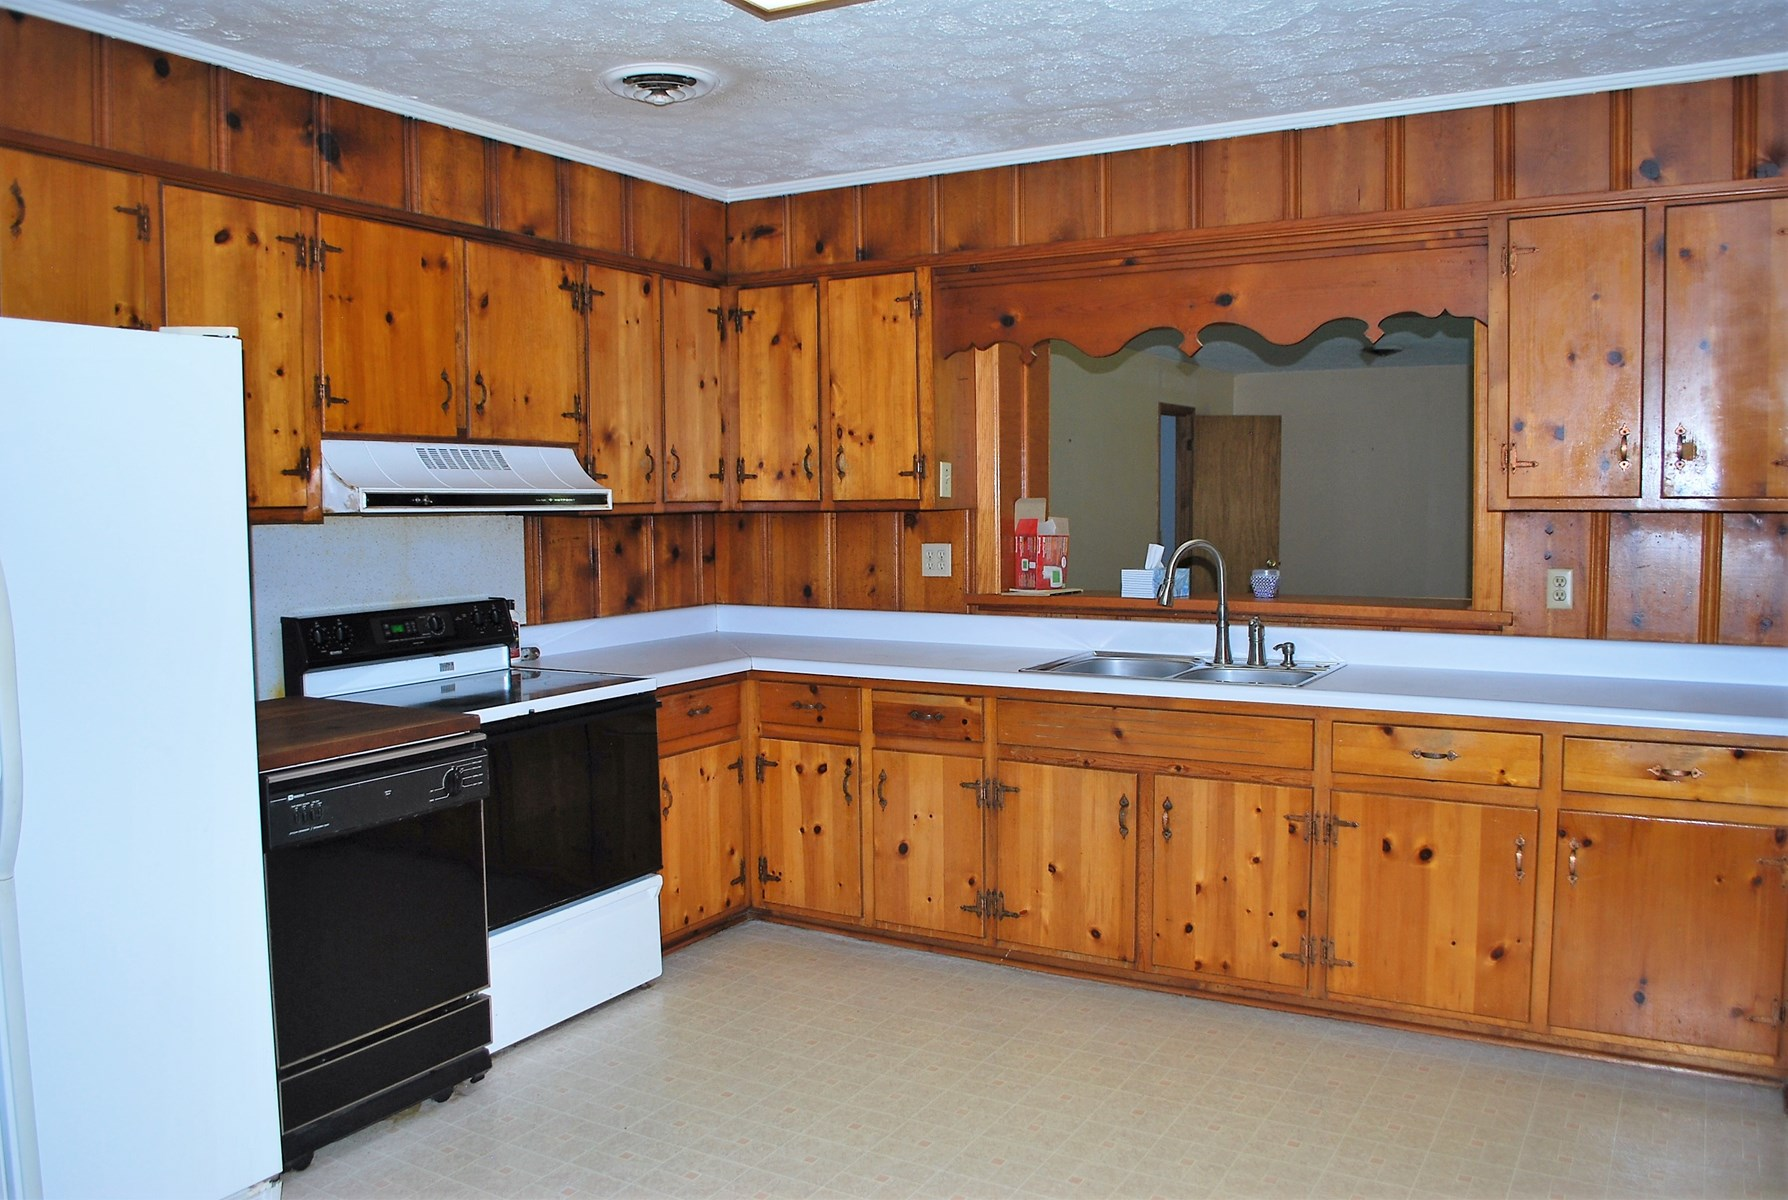 Lots of kitchen cabinets!